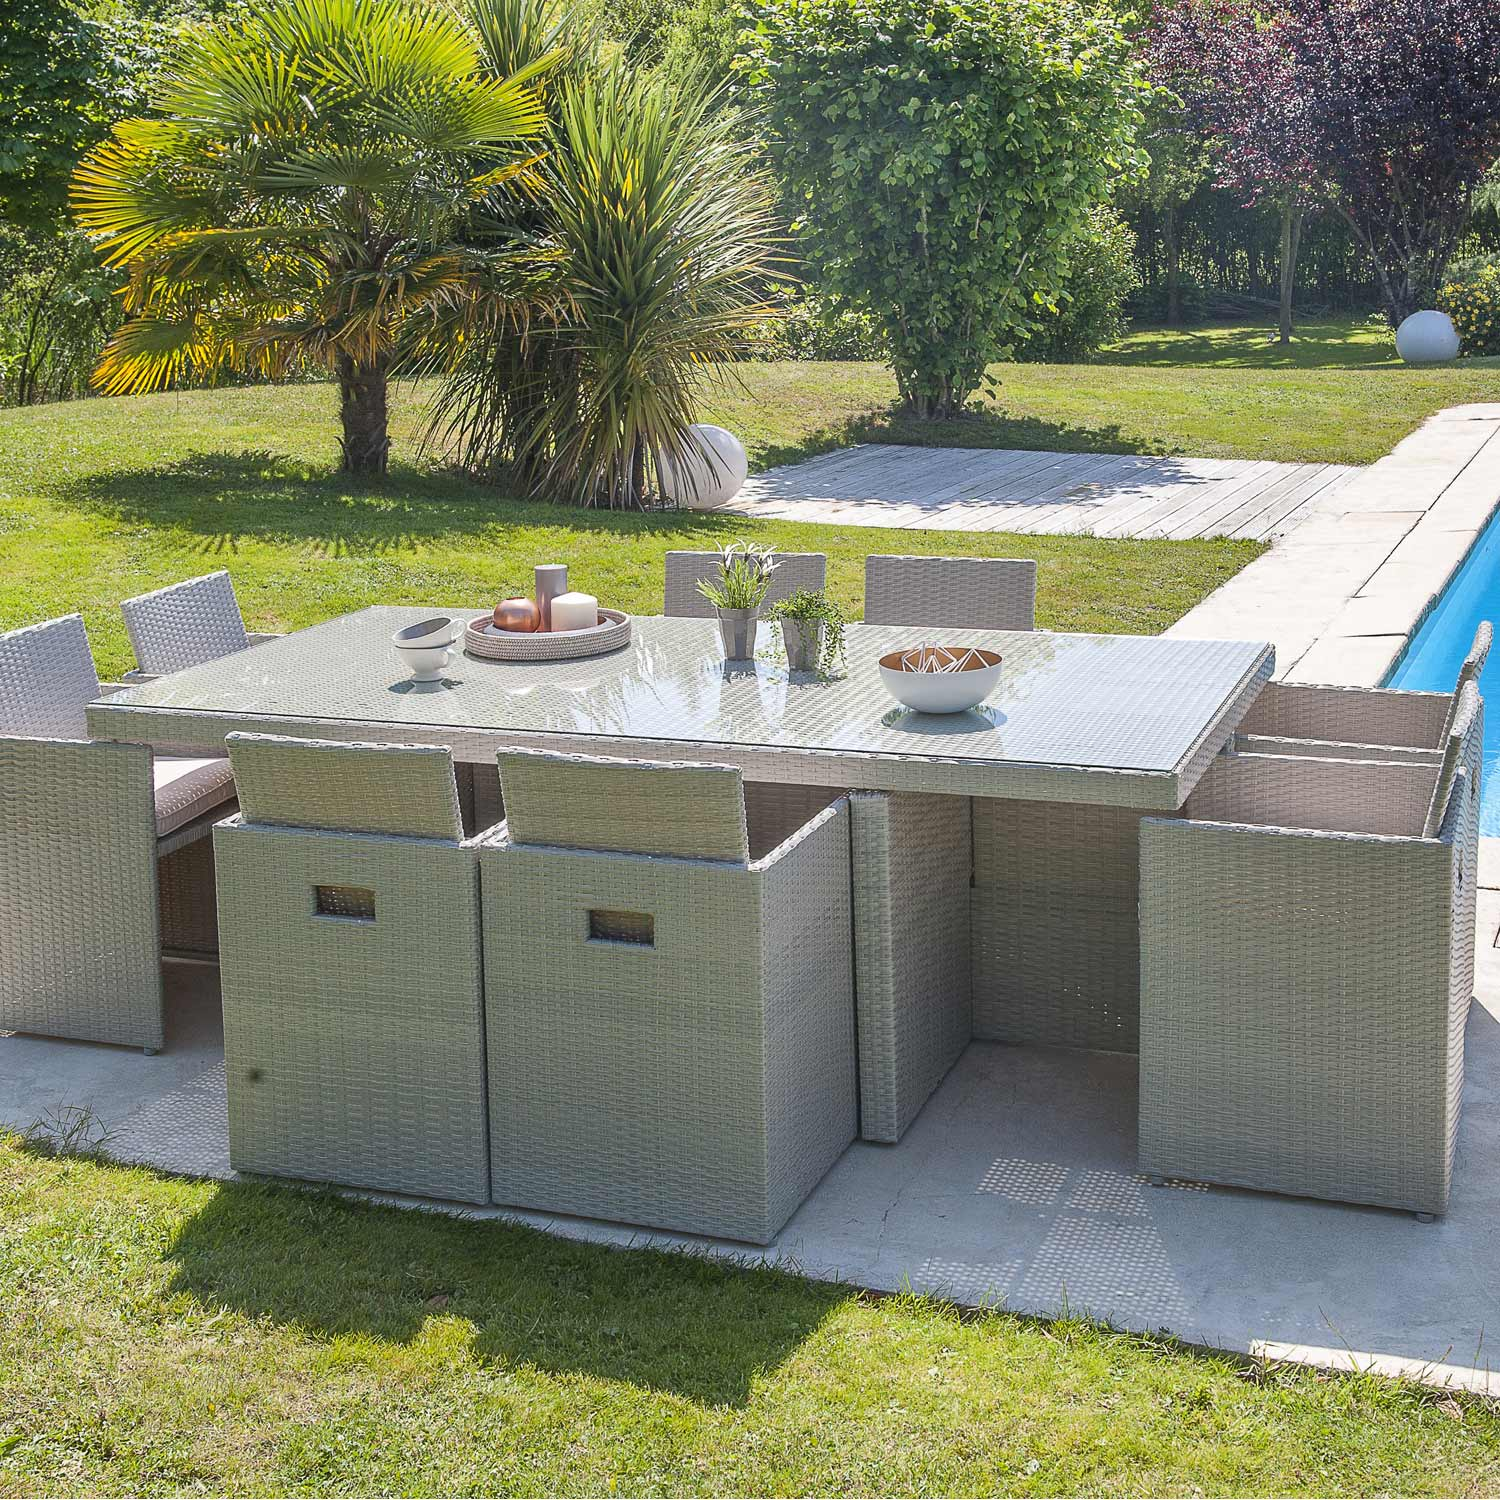 Salon de jardin encastrable r sine tress e gris 1 table for Balancines para jardin leroy merlin